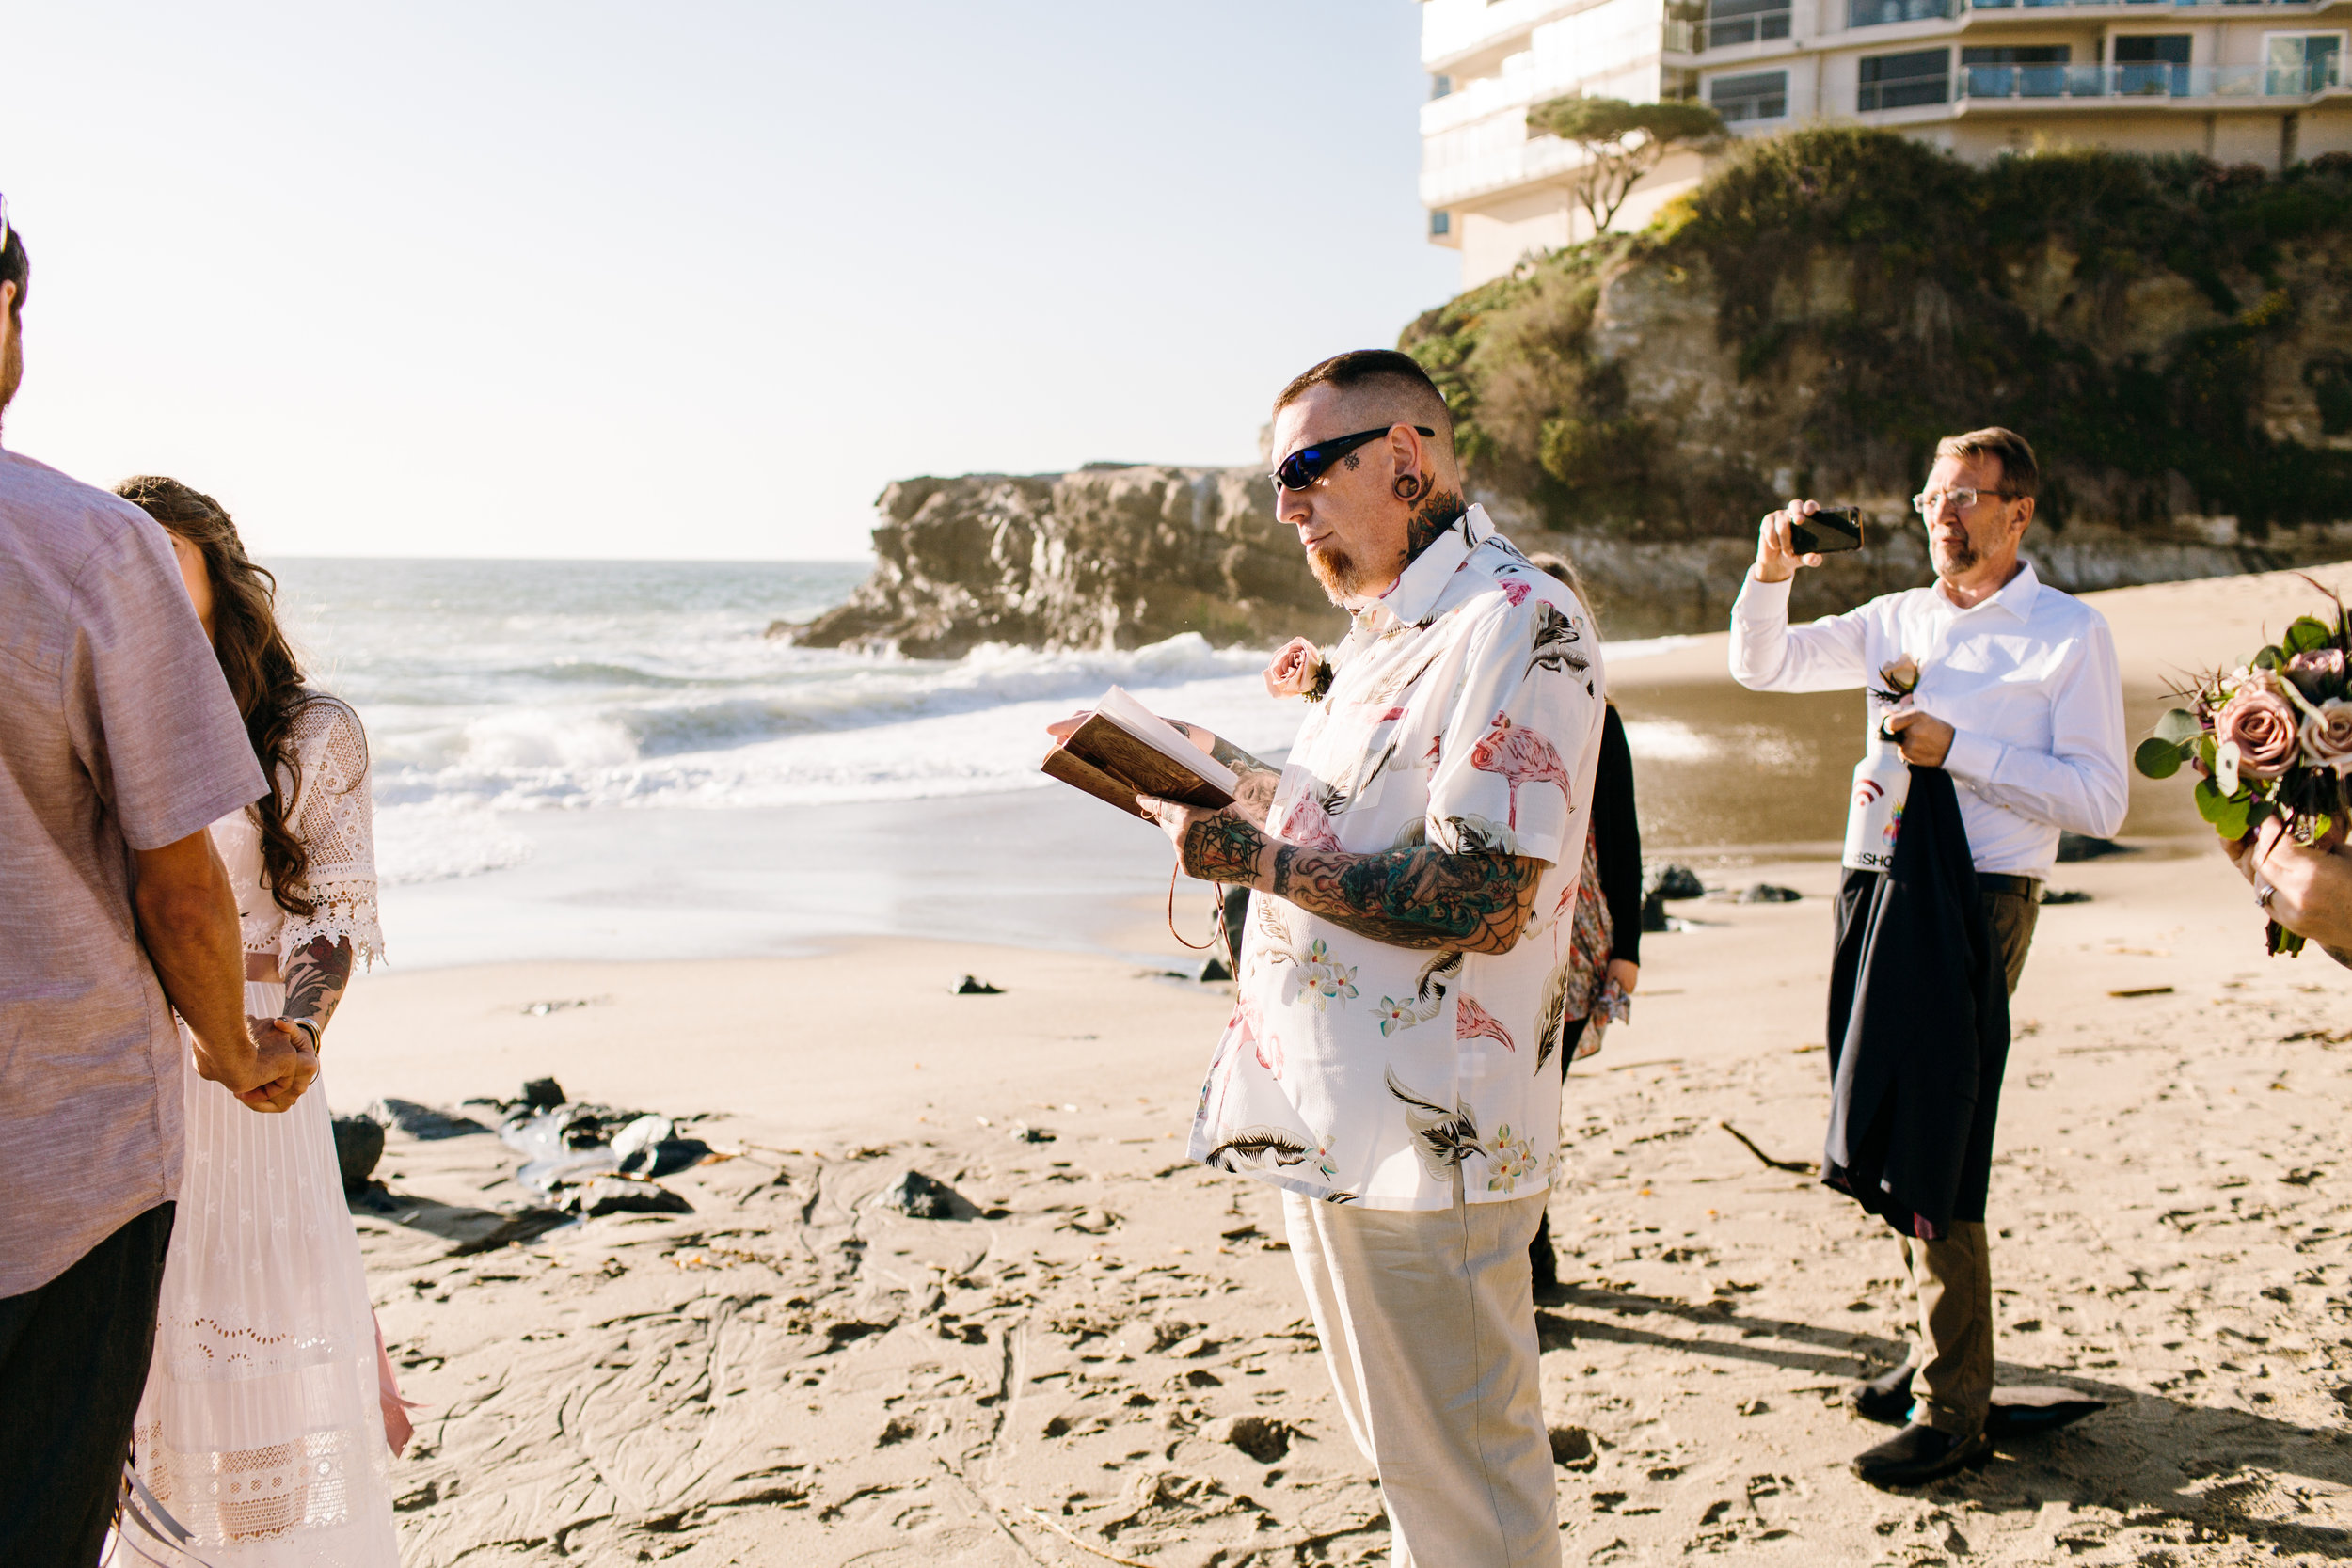 KaraNixonWeddings-LagunaBeach-Tablerock-Elopement-11.jpg